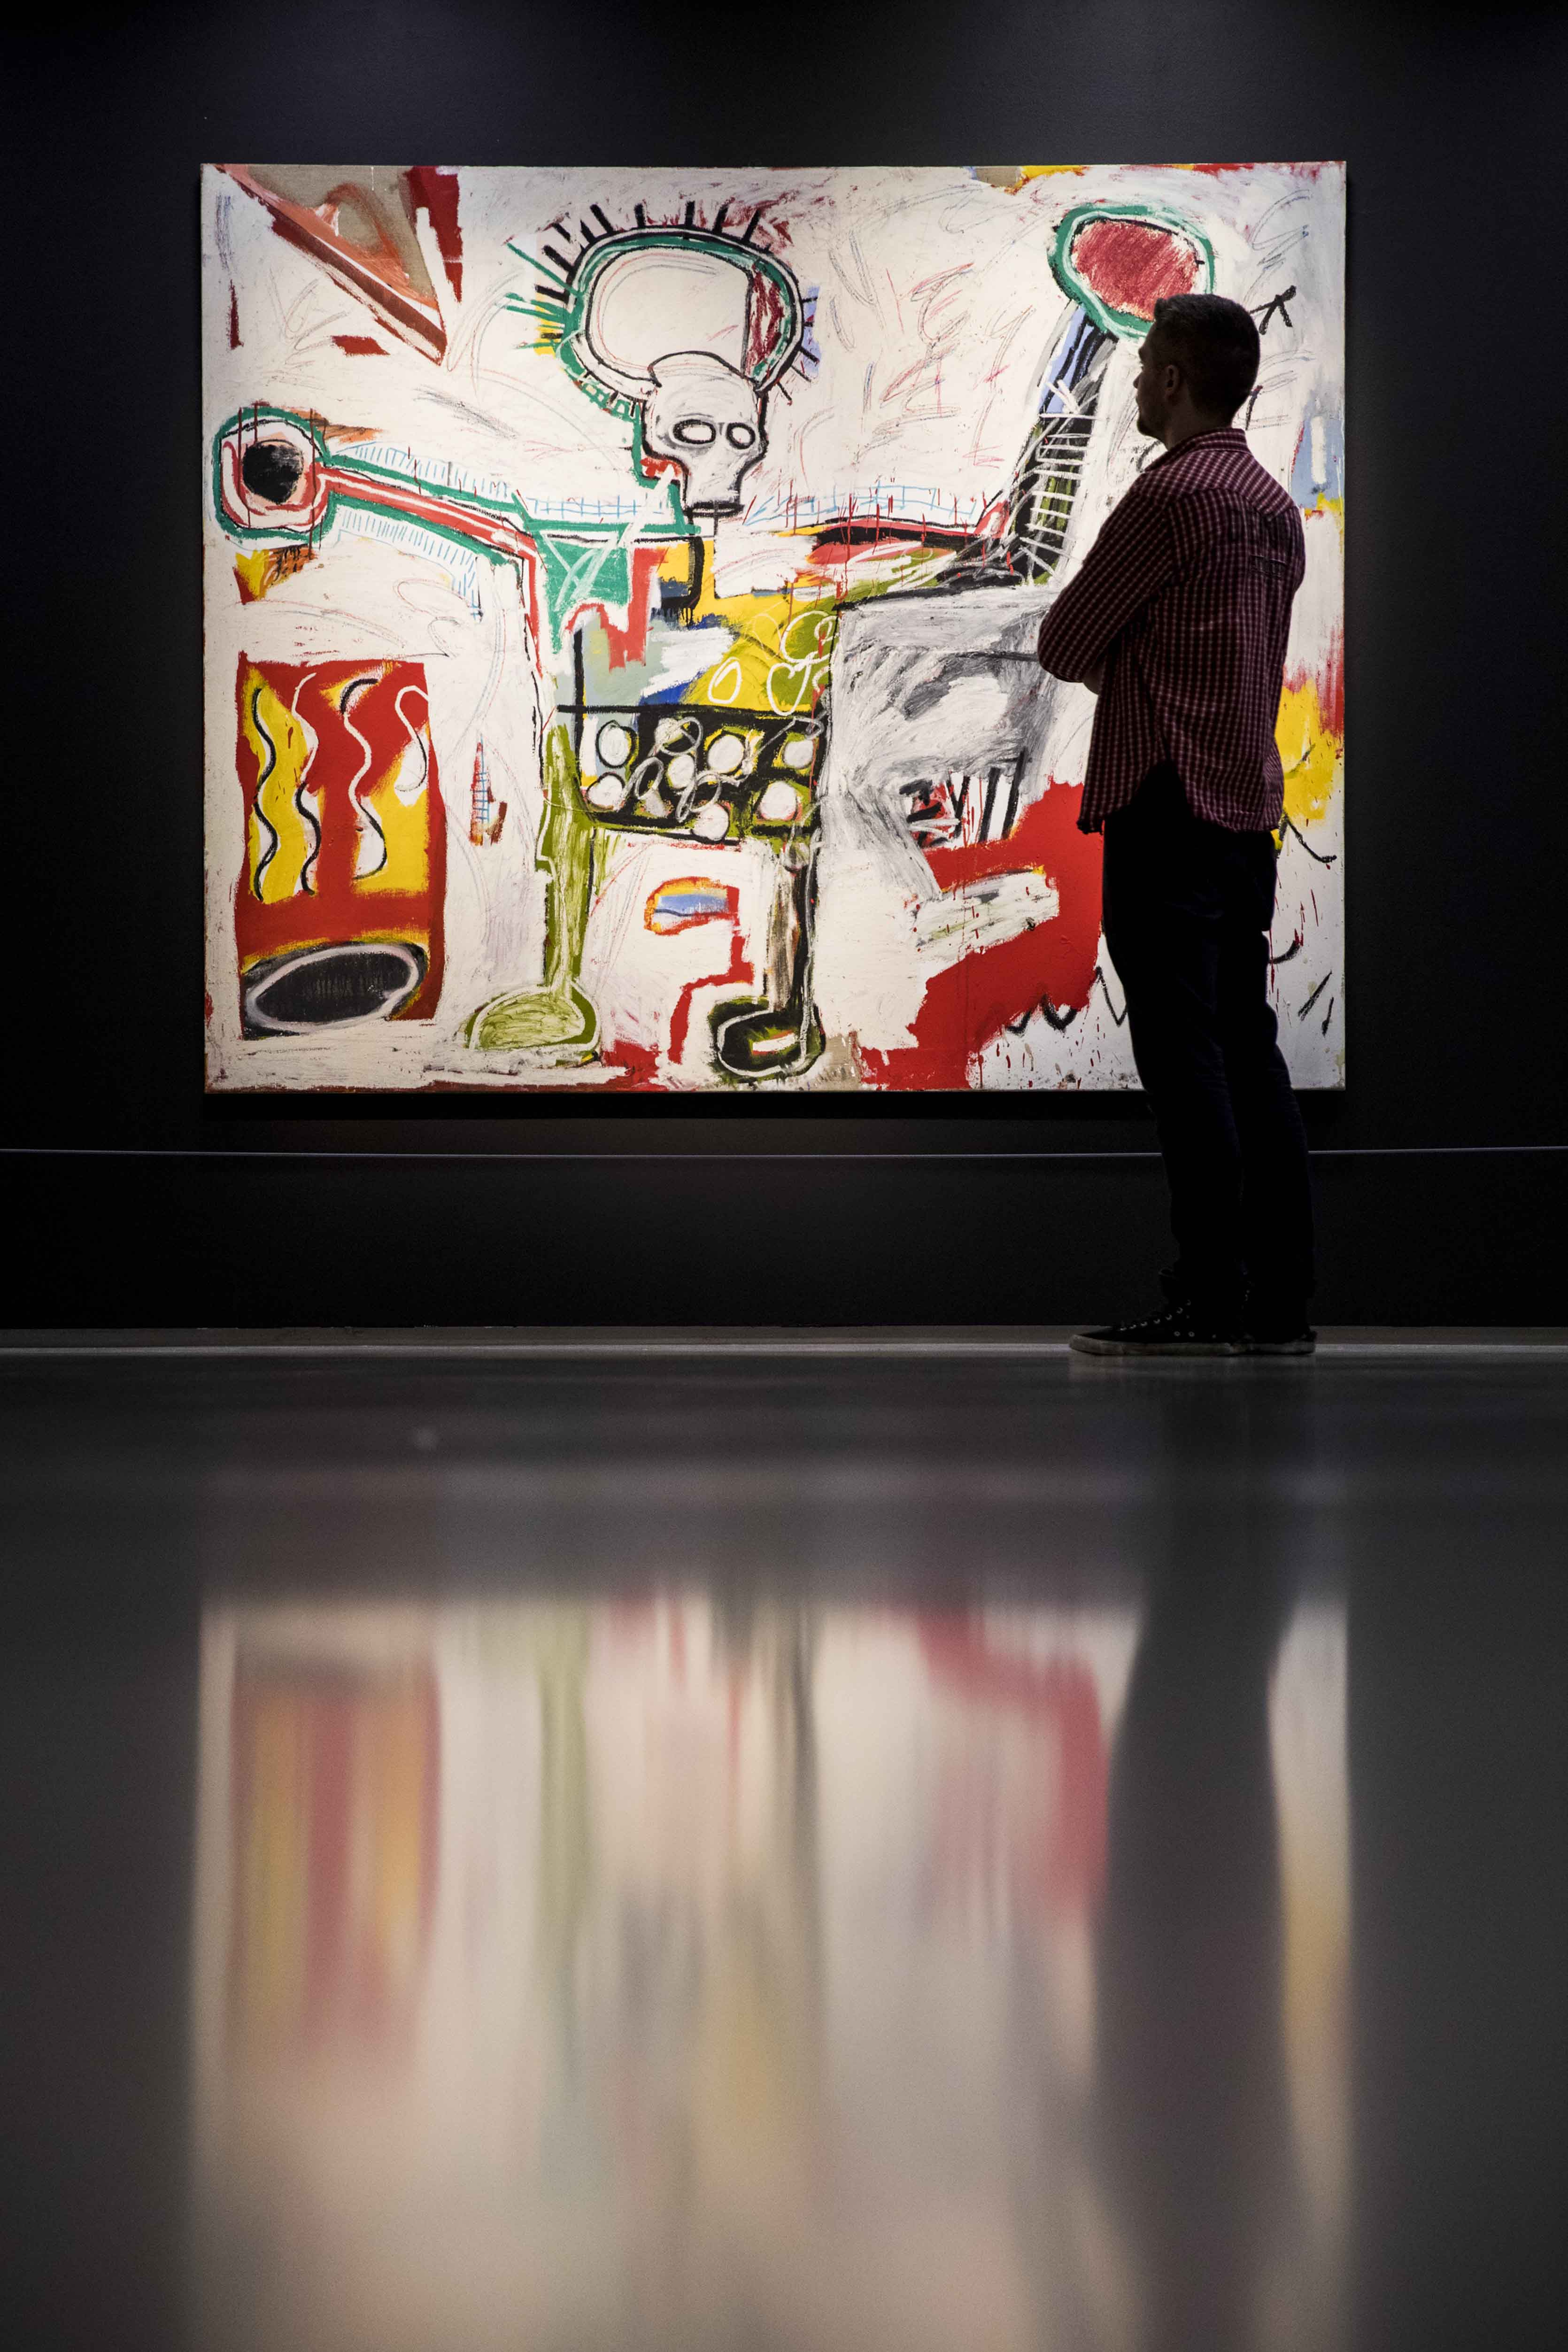 Basquiat: Boom For Real Installation view Barbican Art Gallery 21 September 2017 – 28 January 2018 © Tristan Fewings / Getty Images Artwork: Jean-Michel Basquiat, Untitled, 1982 Courtesy Museum Boijmans Van Beuningen, Rotterdam. © The Estate of Jean-Michel Basquiat. Licensed by Artestar, New York.